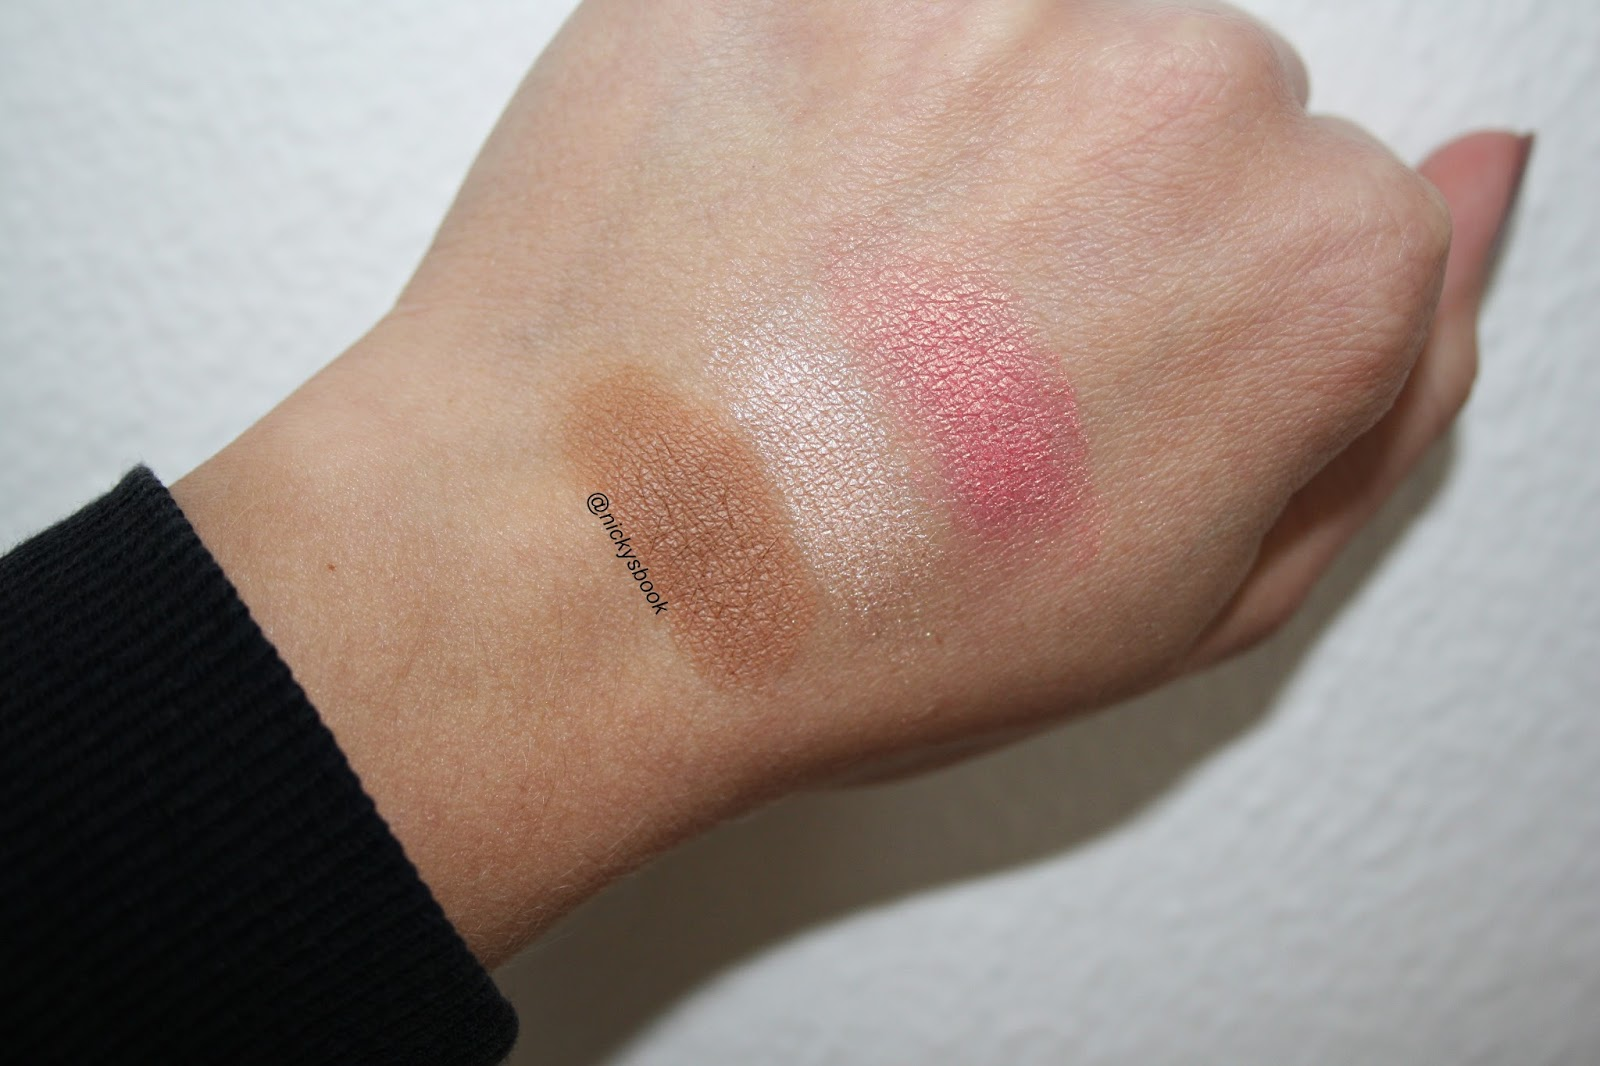 ... Makeup Revolution Sculpt Contour Kit C04 Review Makeup Nuovogennarino